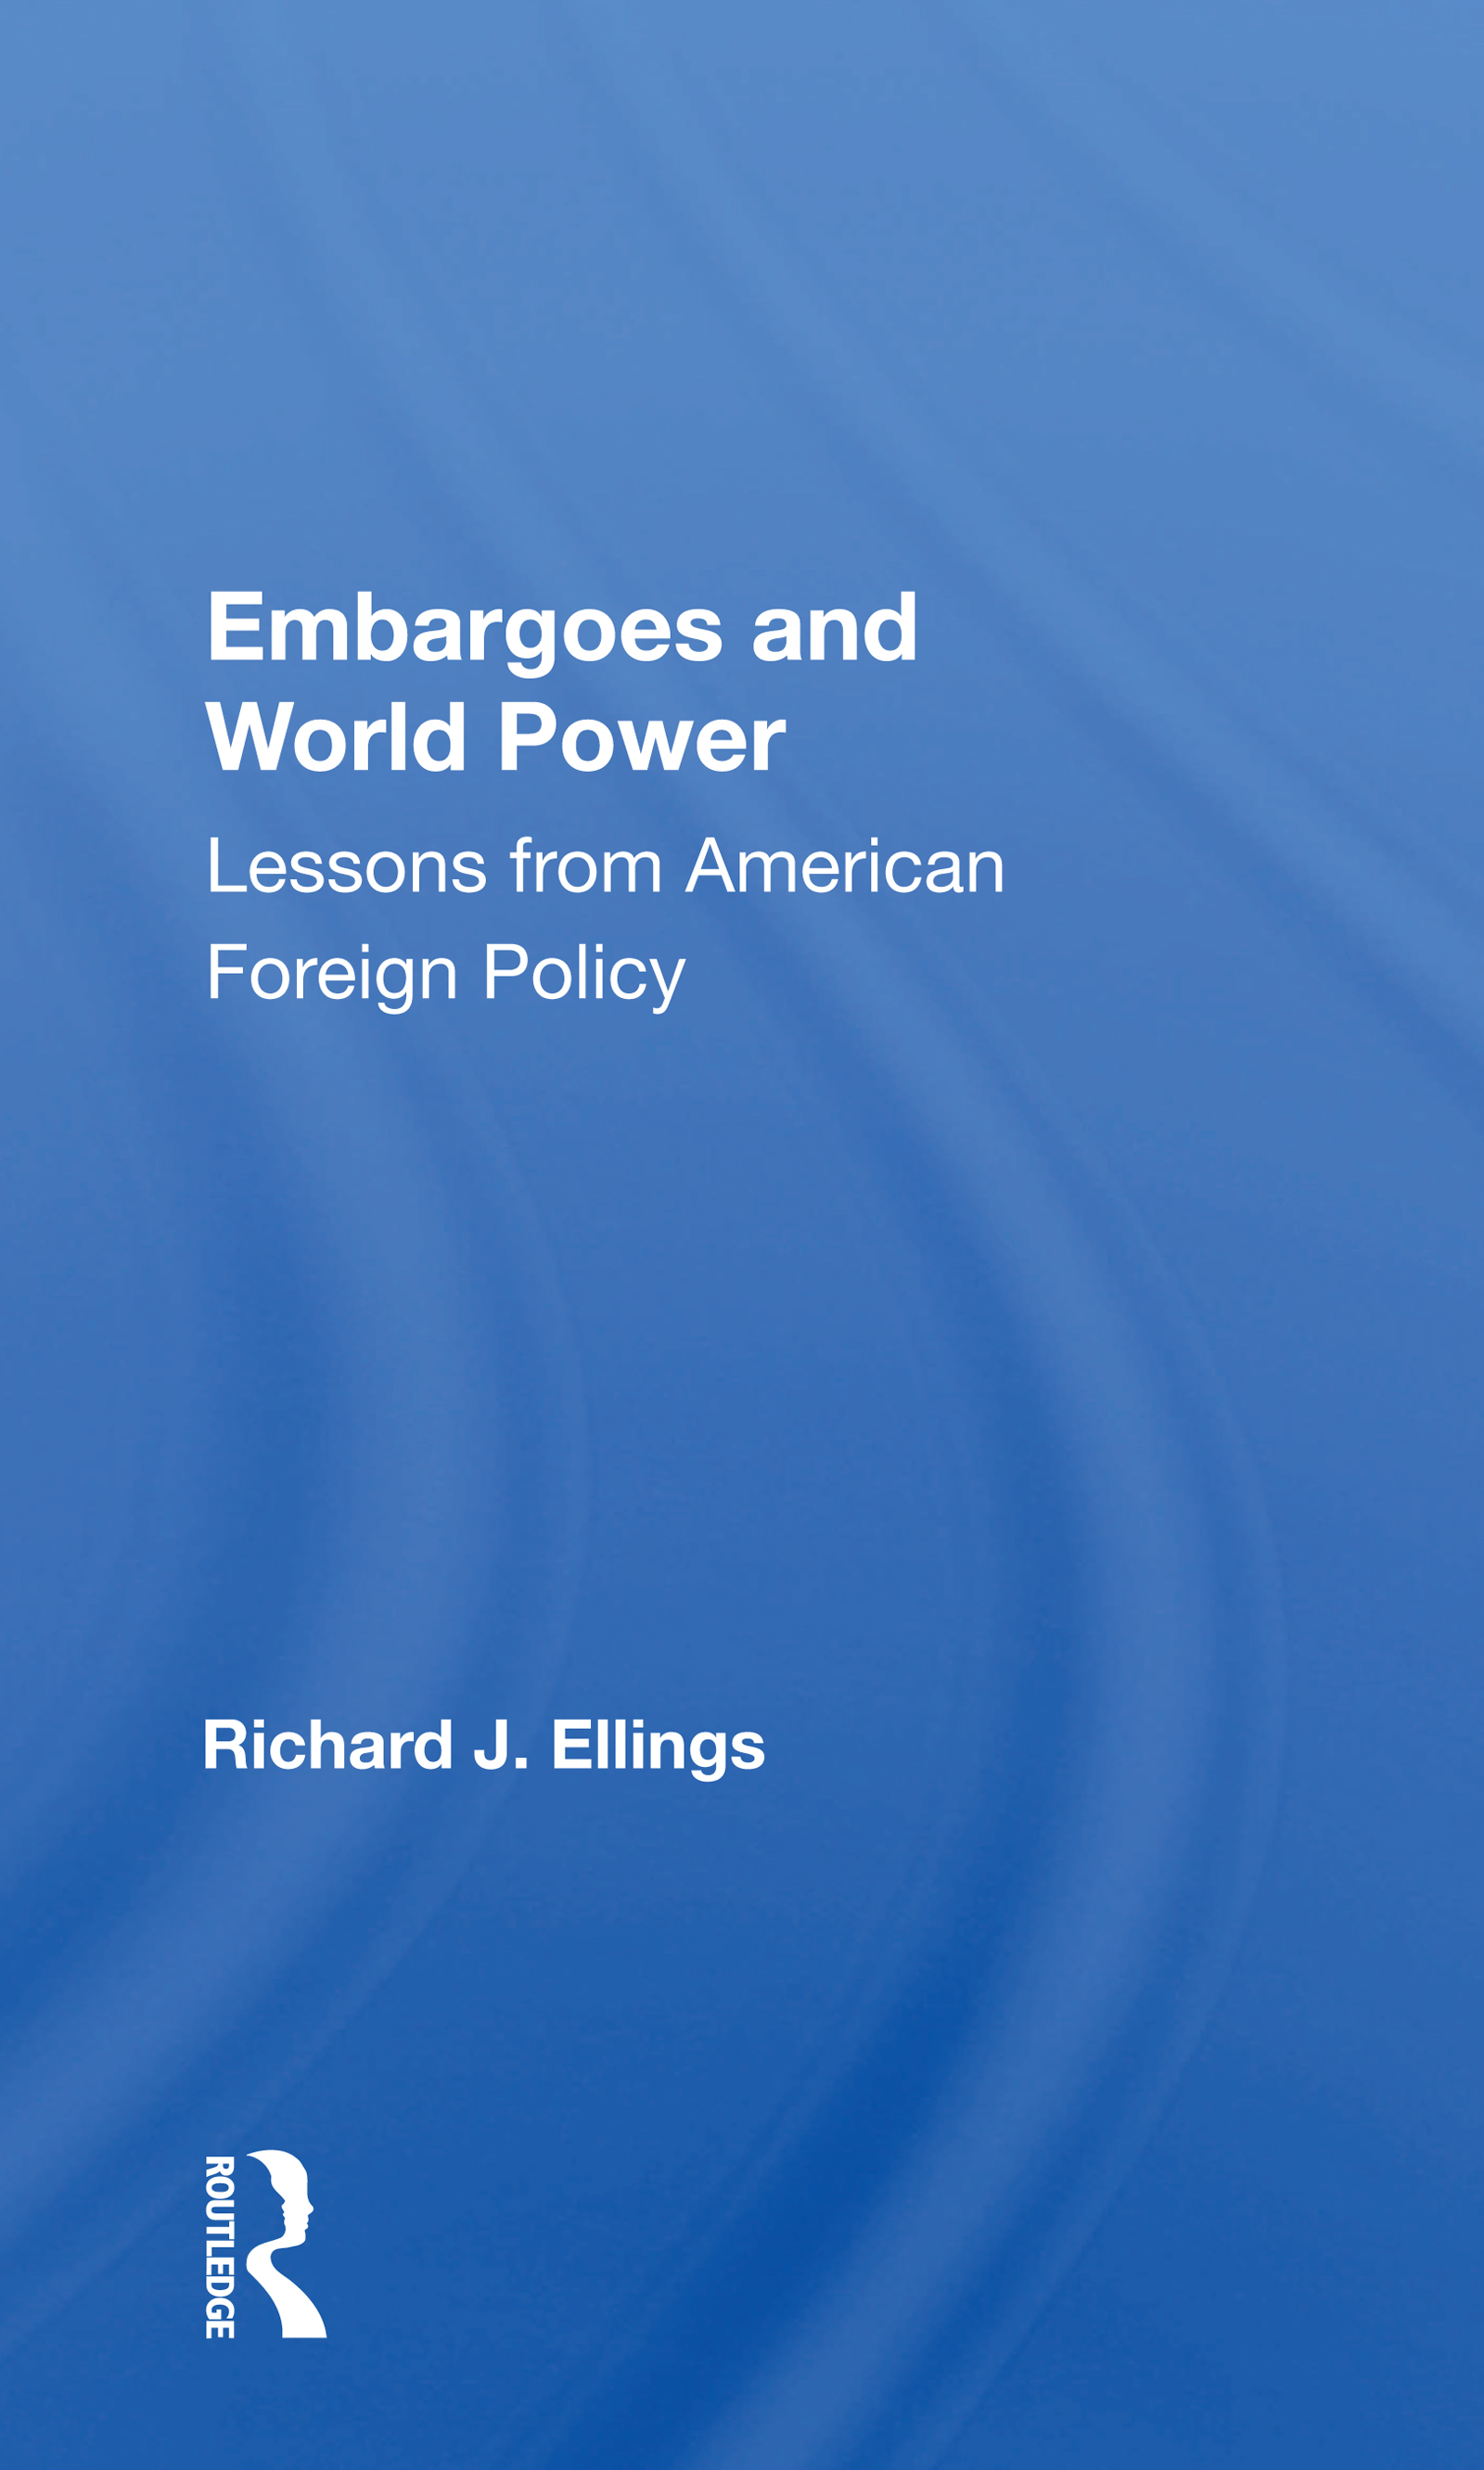 Embargoes and World Power